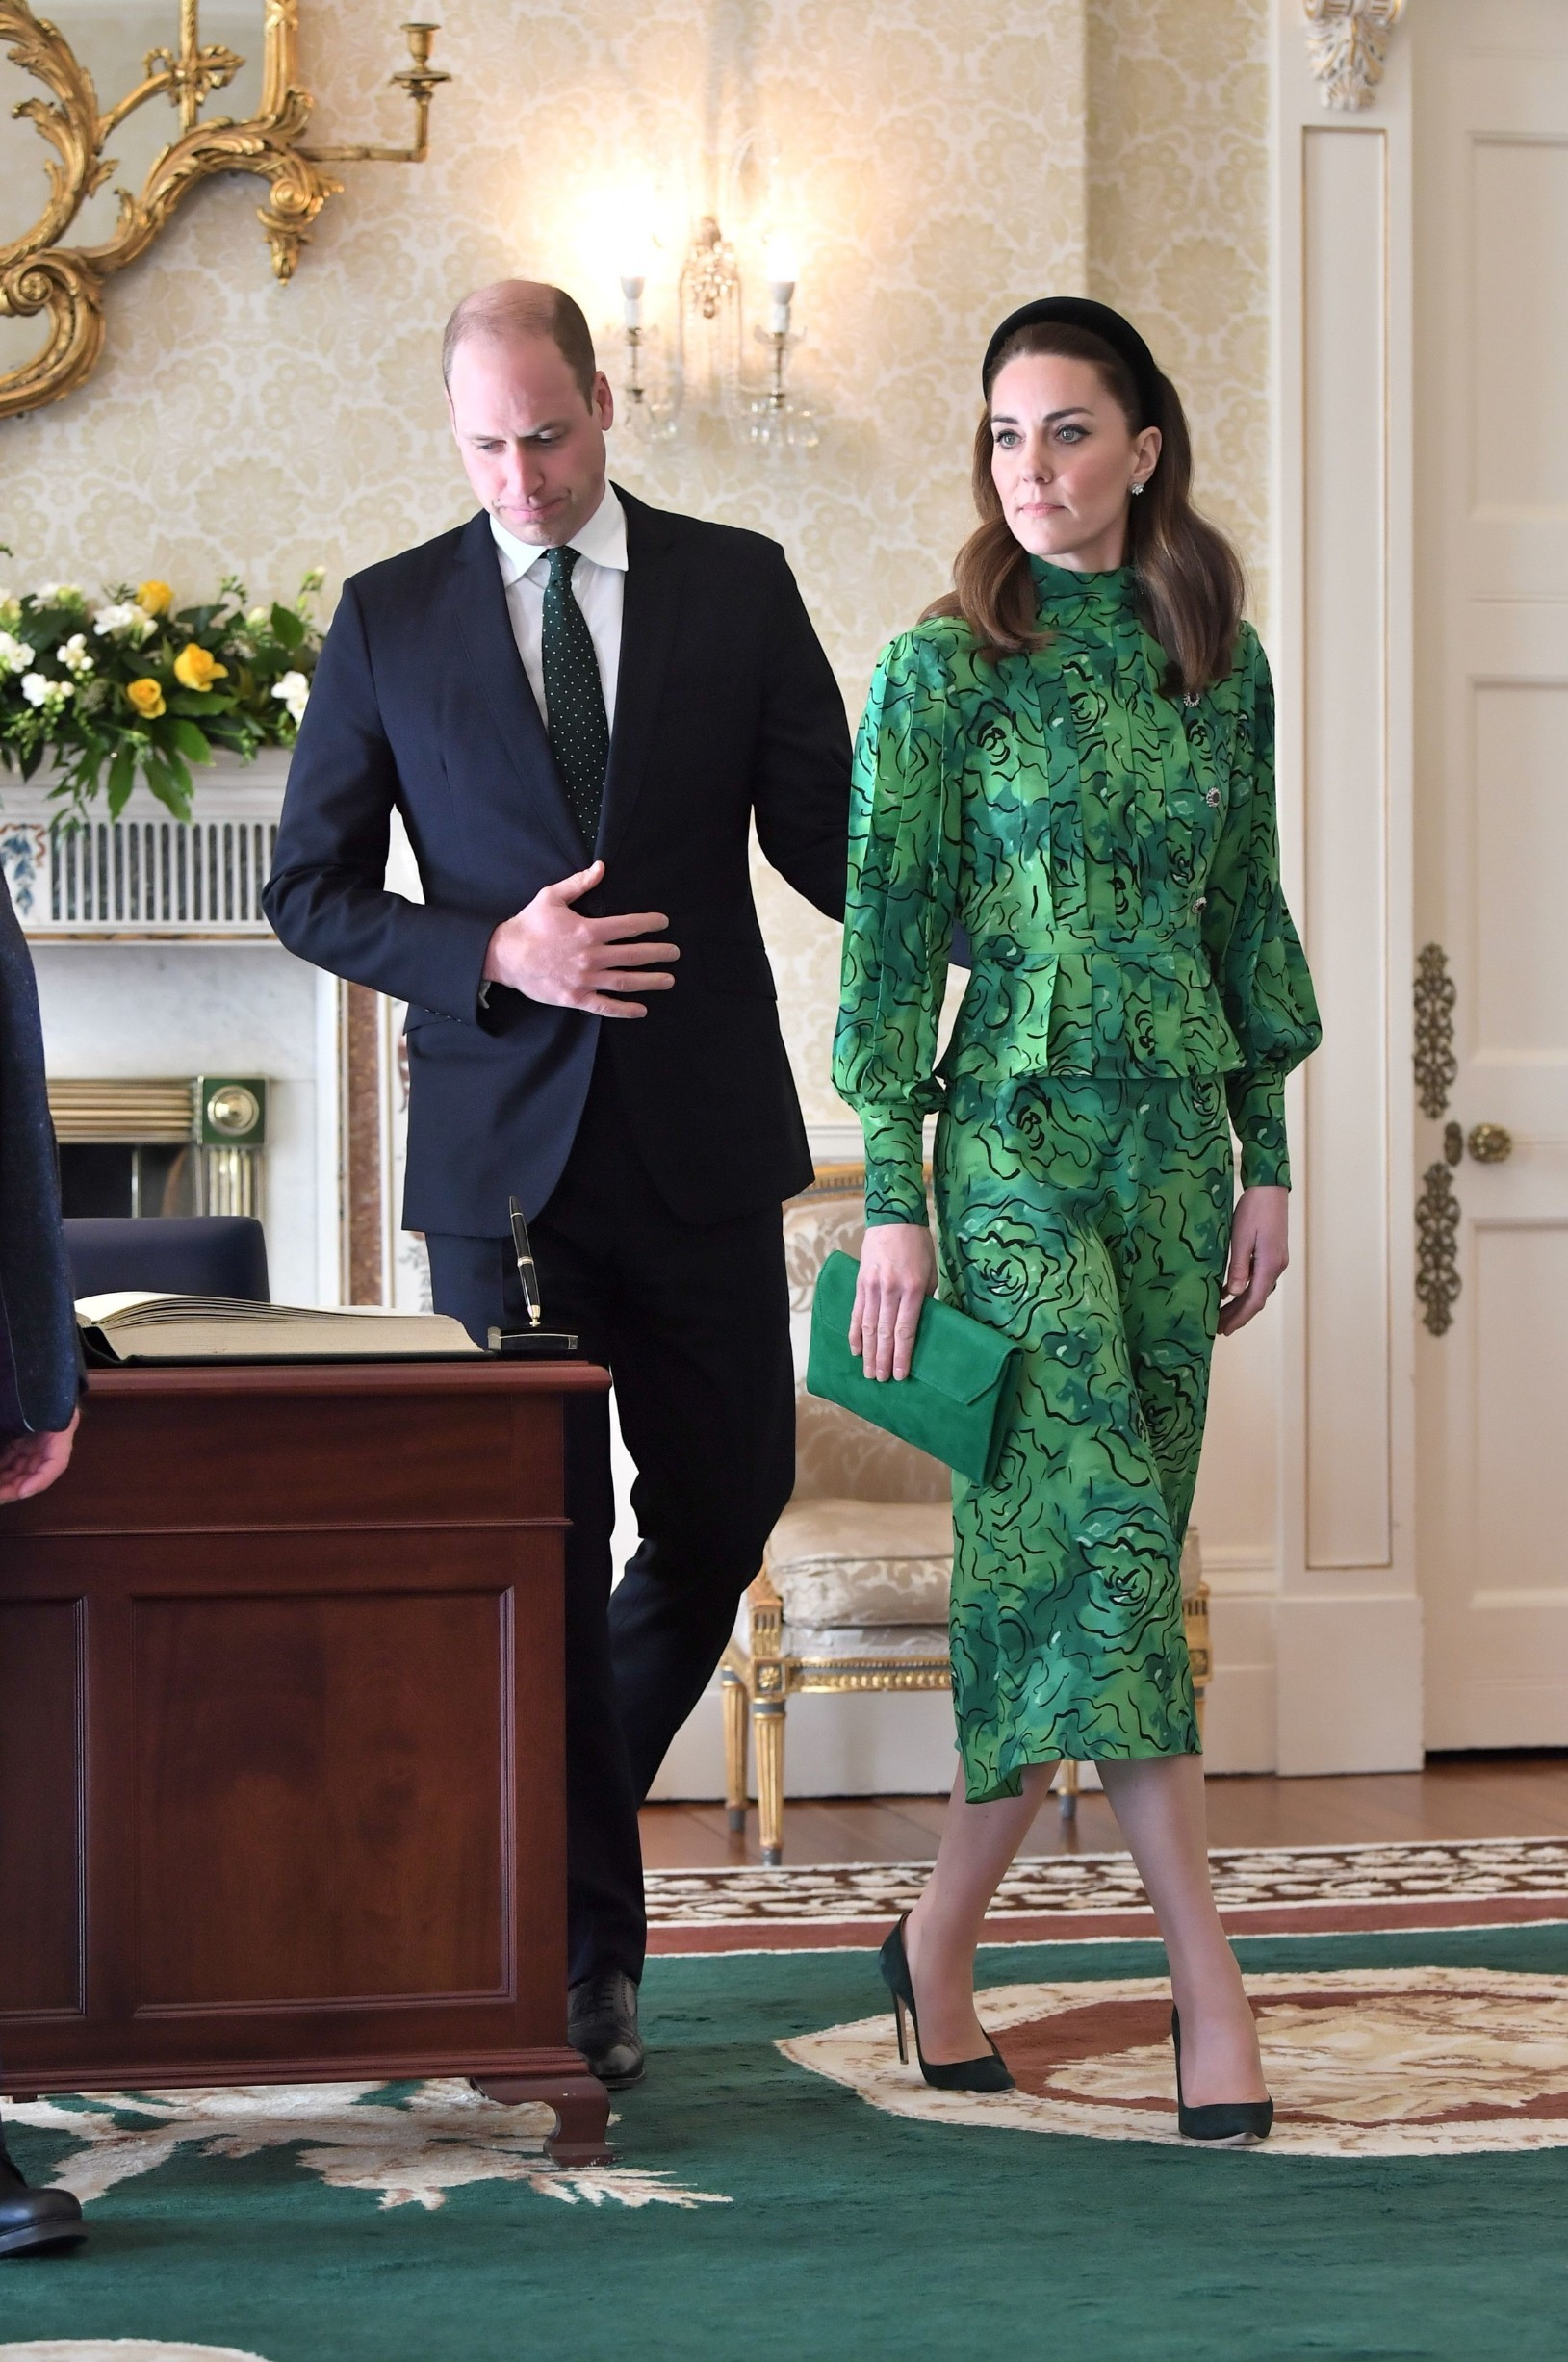 Prince William and Catherine Duchess of Cambridge arrive for a meeting with the President of Ireland Prince William and Catherine Duchess of Cambridge visit to Ireland - 03 Mar 2020, Image: 502799273, License: Rights-managed, Restrictions: , Model Release: no, Credit line: REX / Shutterstock Editorial / Profimedia